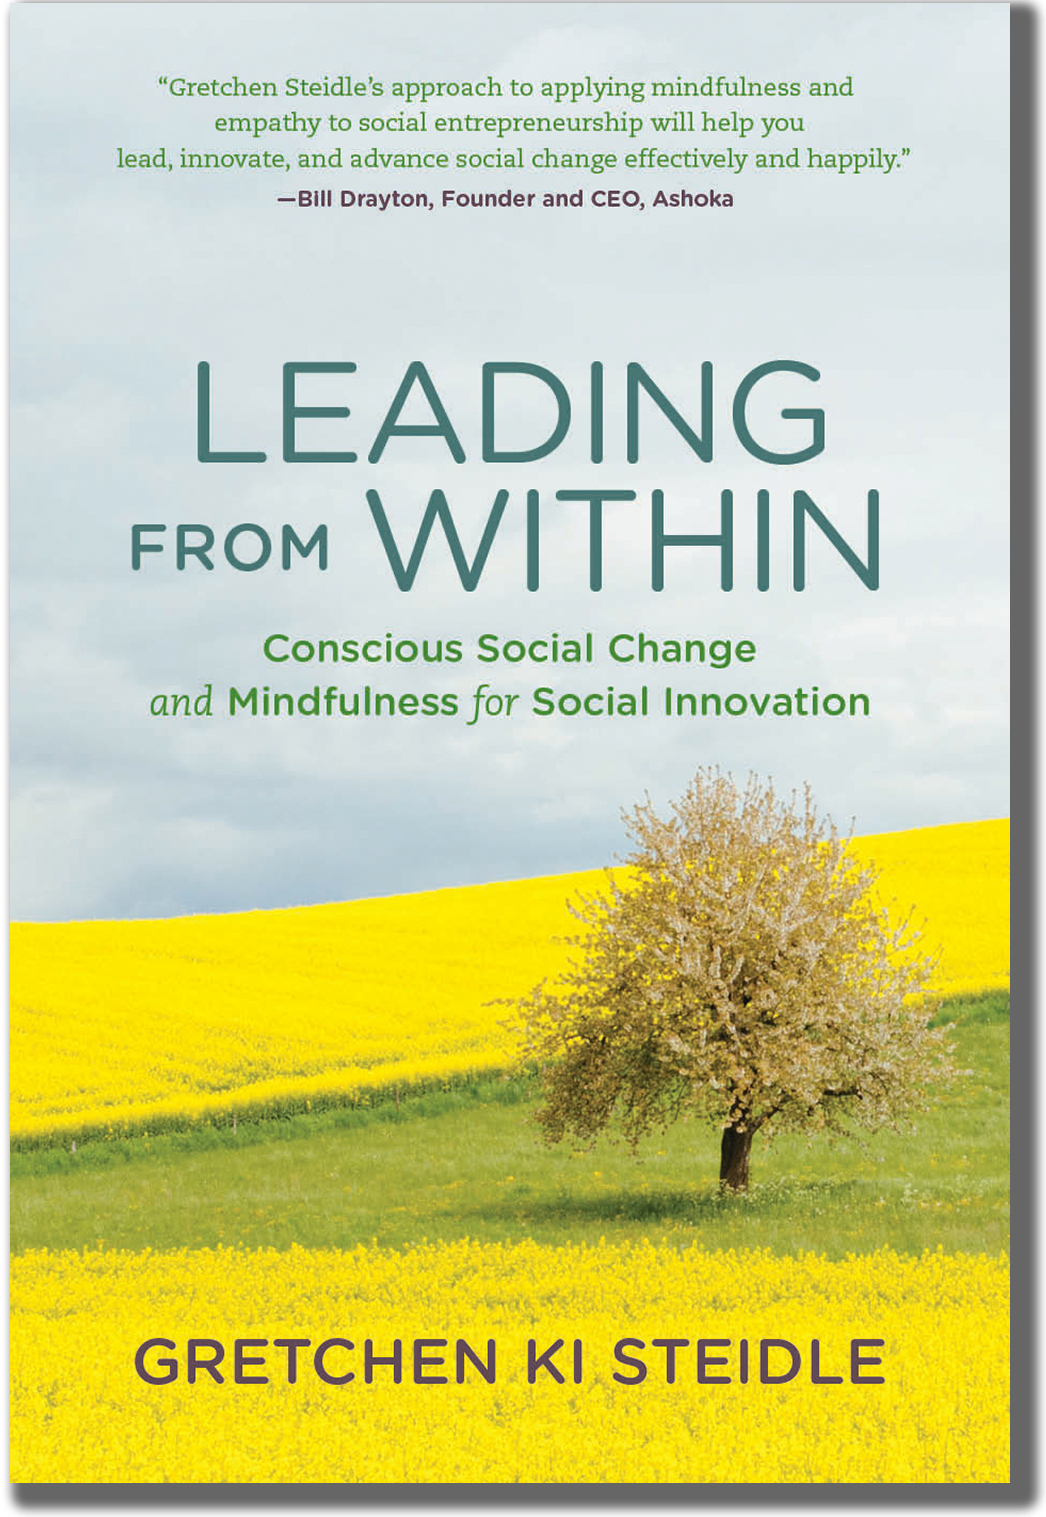 Leading from Within,  by Gretchen Ki Steidle